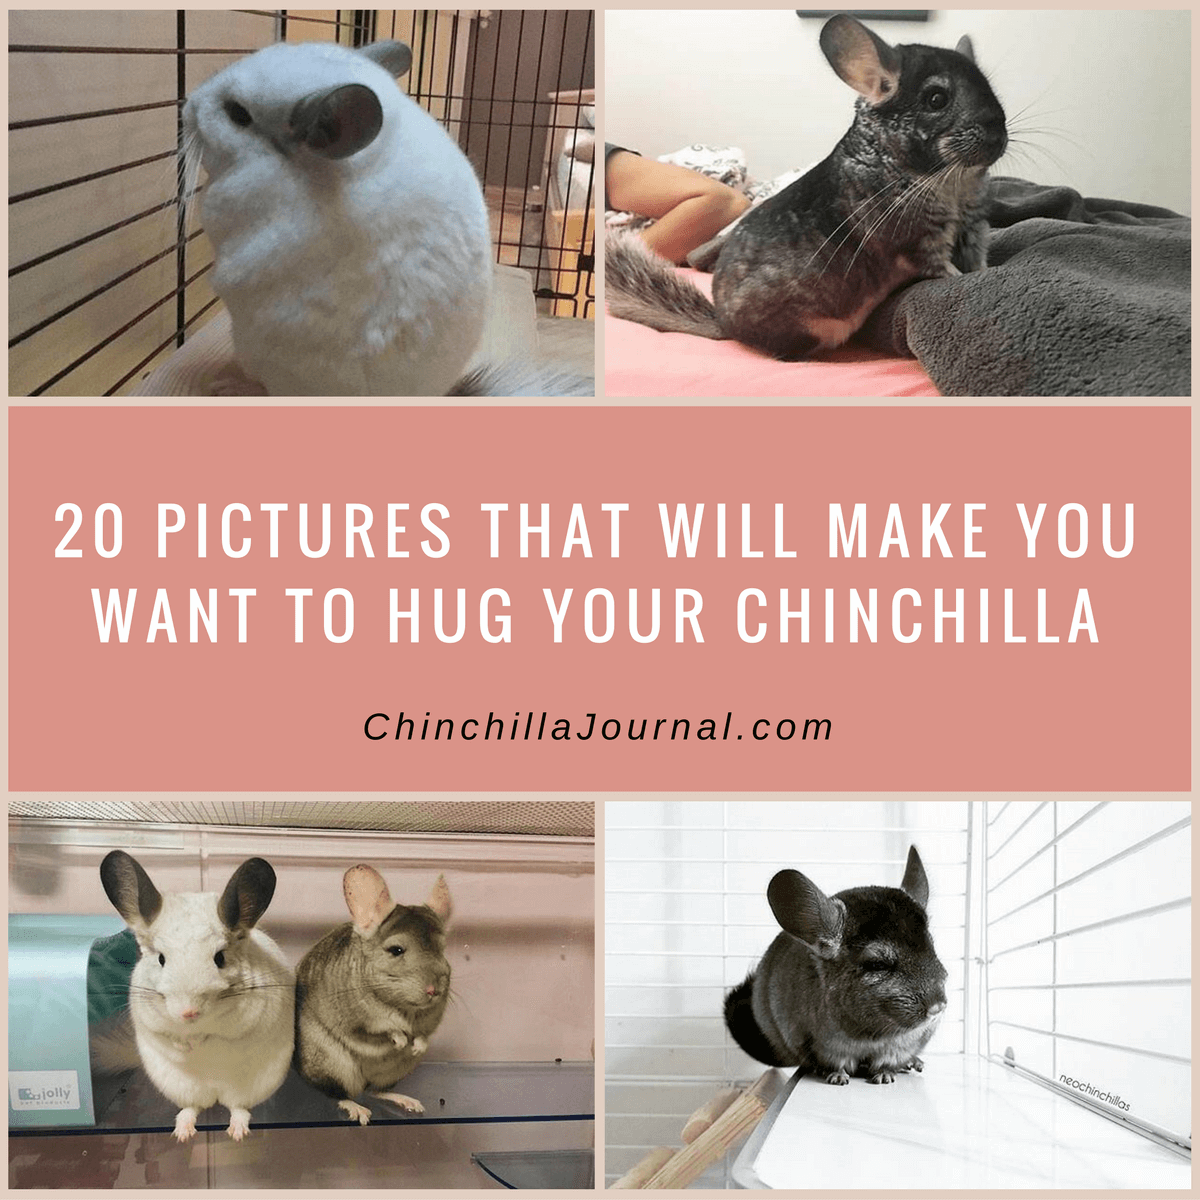 I Want To Cuddle With You Baby: 20 Pictures That Will Make You Want To Hug Your Chinchilla